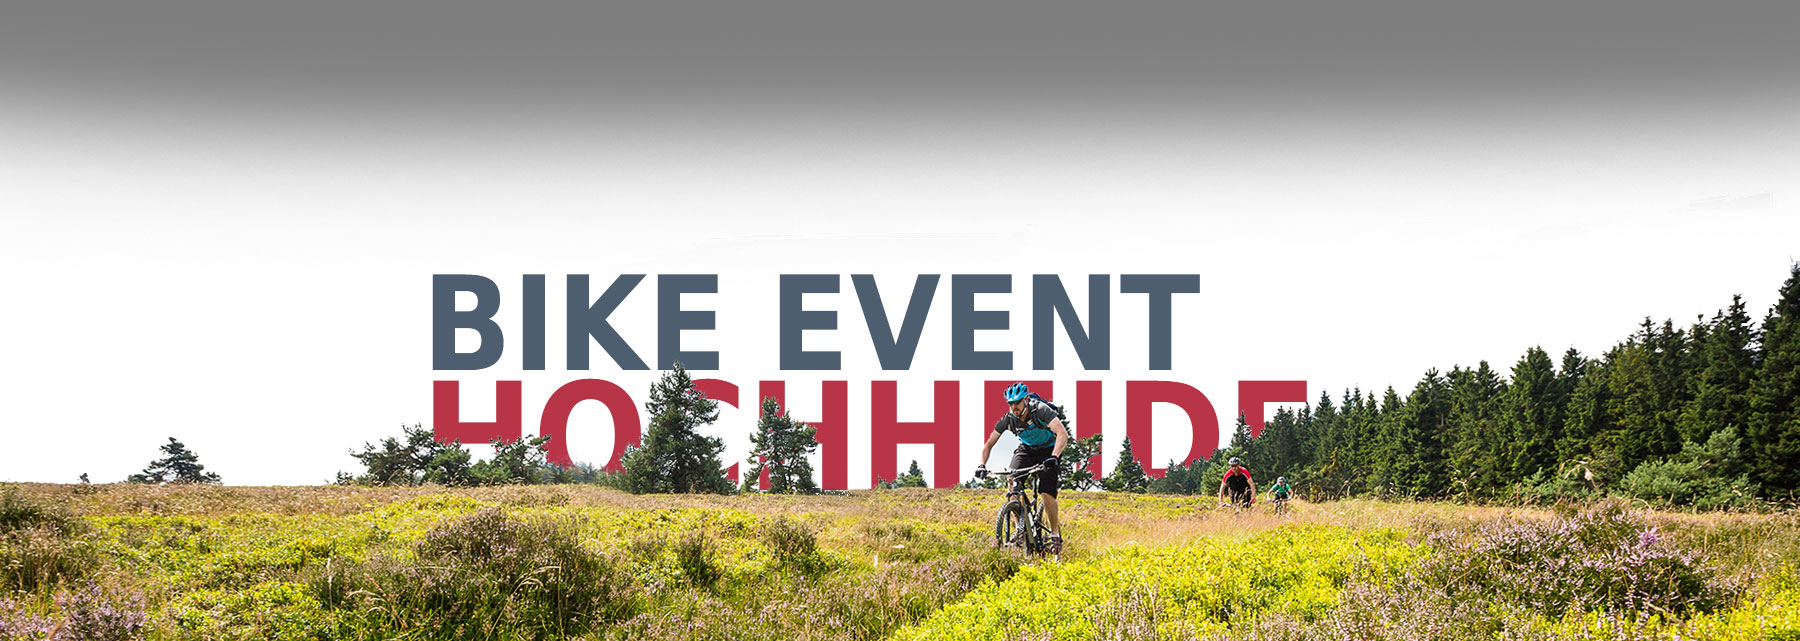 Hochhheide - Bike Mountain Bike Event